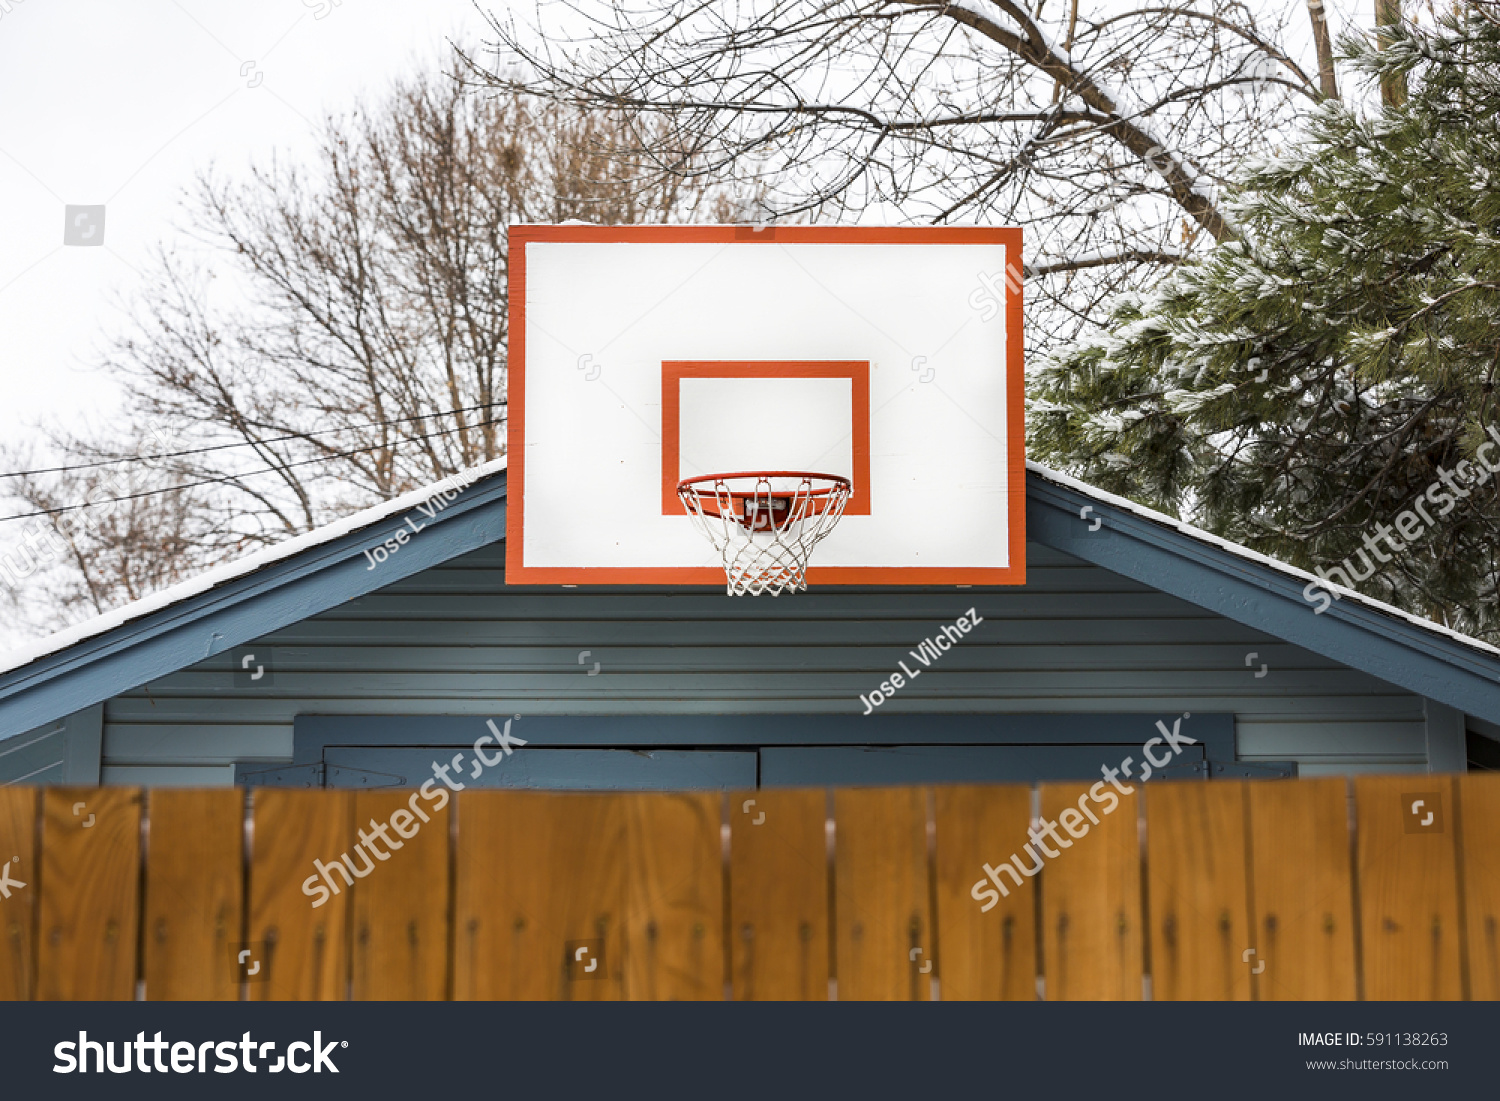 Garage basketball hoop stock photo 591138263 shutterstock for Basketball garage